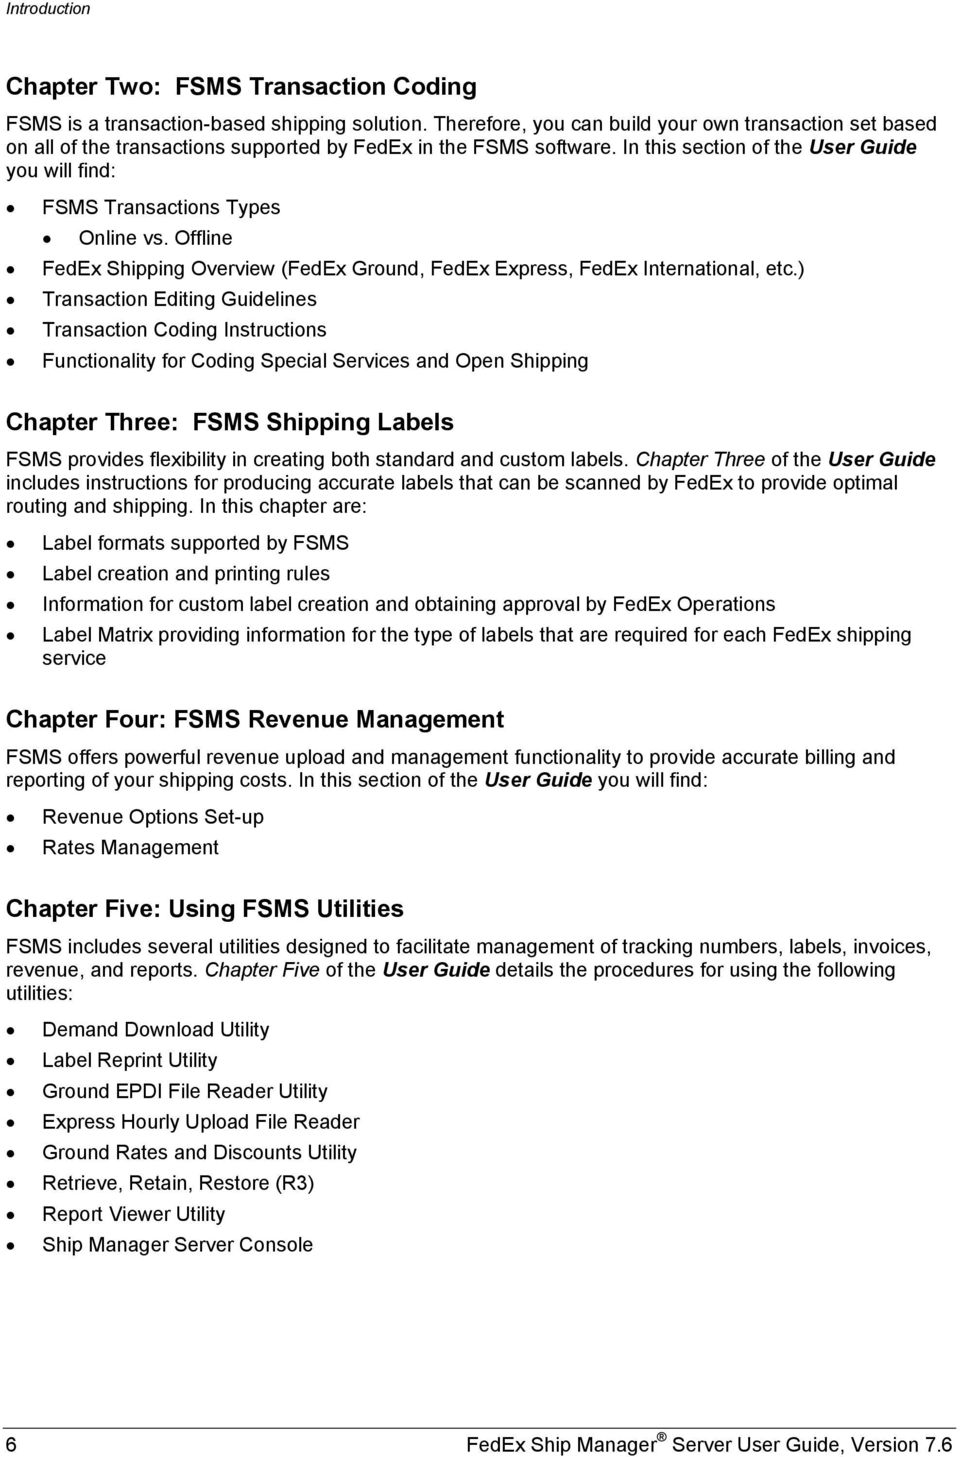 in this section of the user guide you will find fsms transactions types online vs